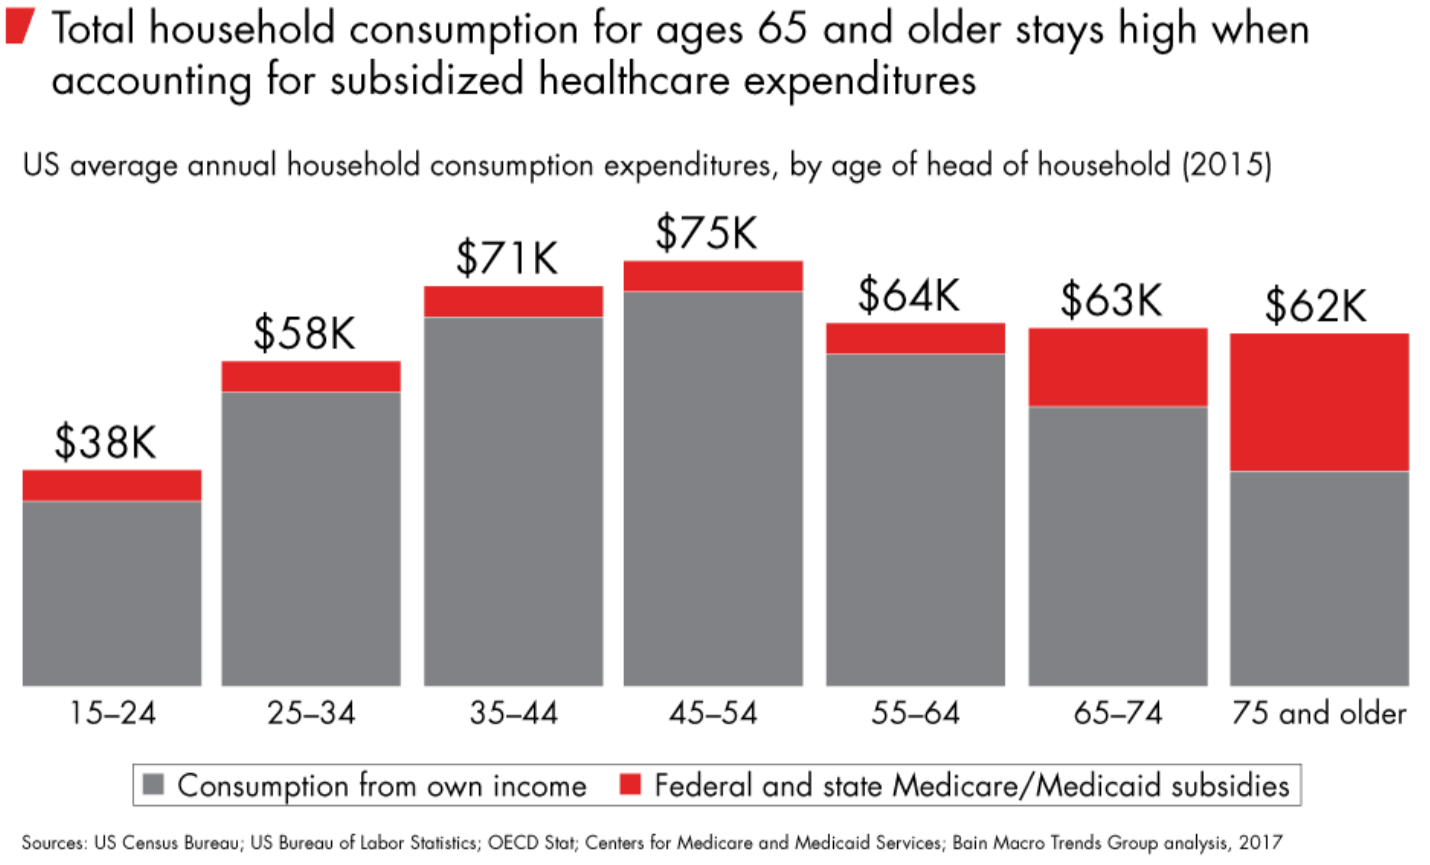 Total household consumption for ages 65 and older